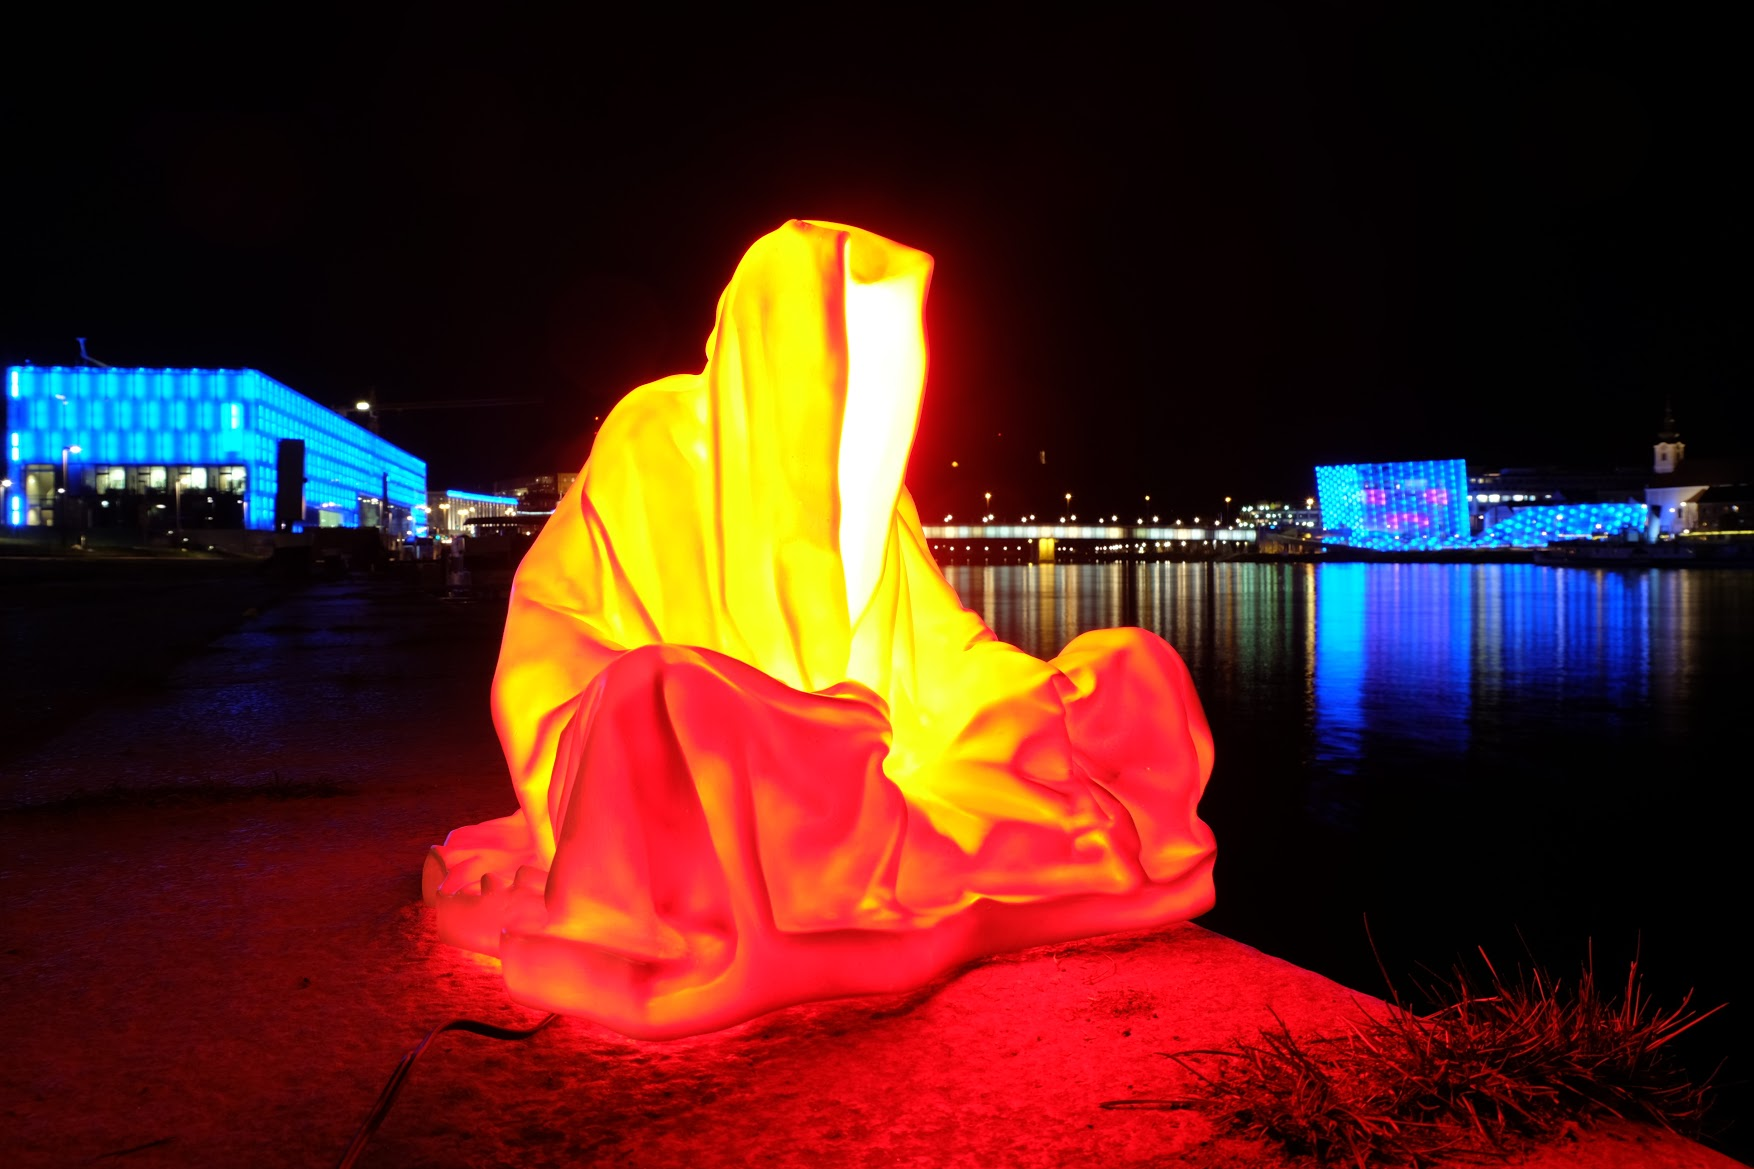 guardians of time manfred kielnhofer linz light art contemporary art sculpture statue modern design lamp light lumina 1817